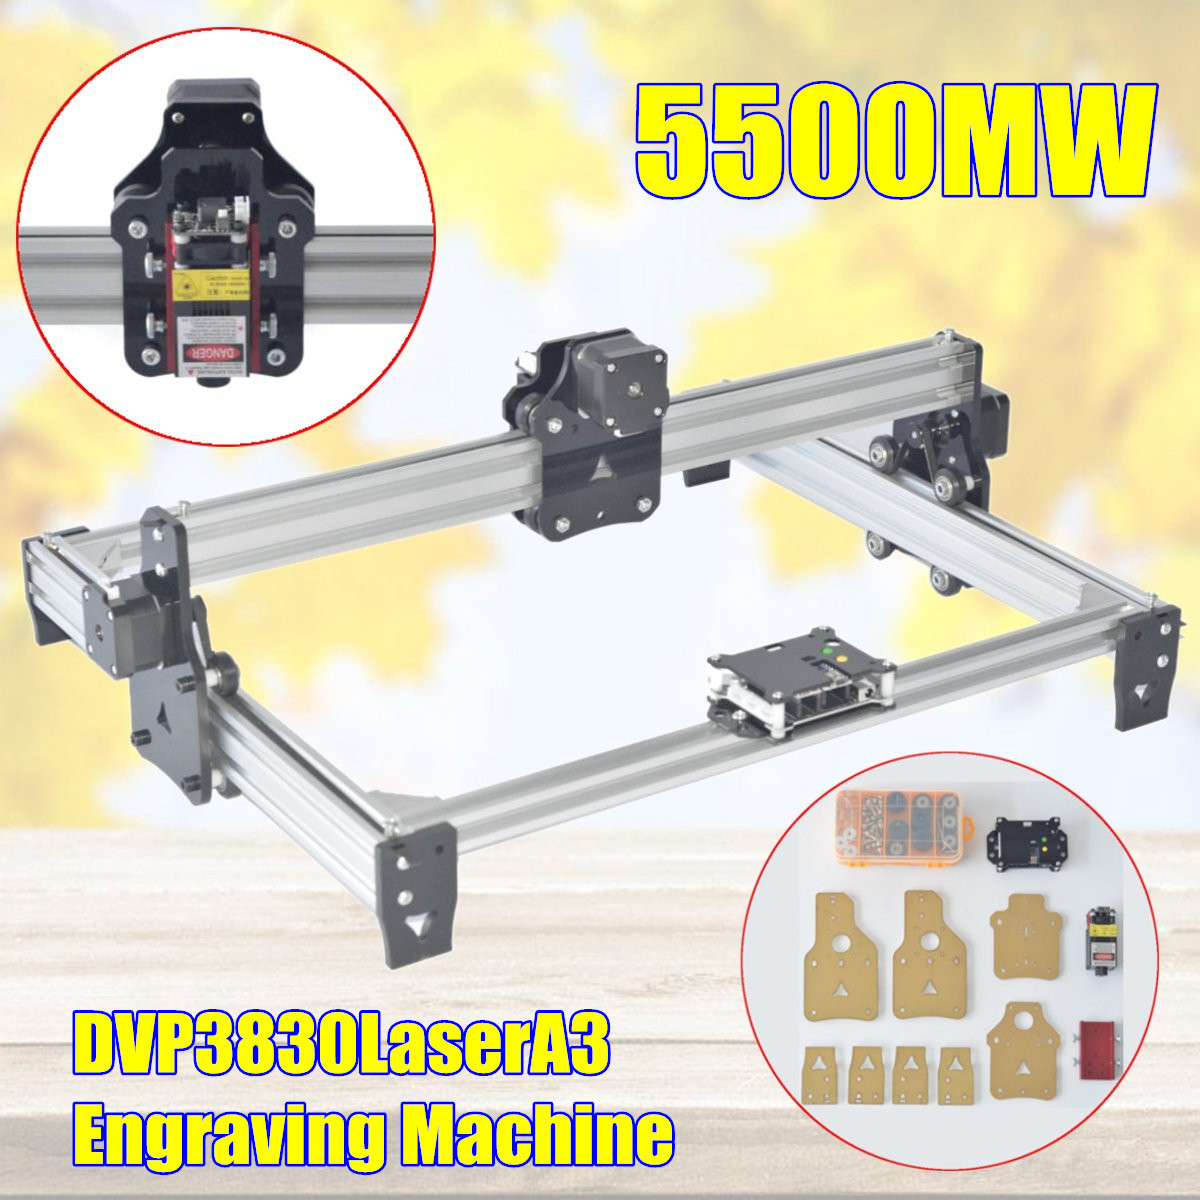 5500mw DVP 3830 Laser A3 Engraving Machine,DIY Laser Engraver Machine,Wood Router,laser cutter,cnc router,Woodworking Machinery yanni yanni the veri best of yanni